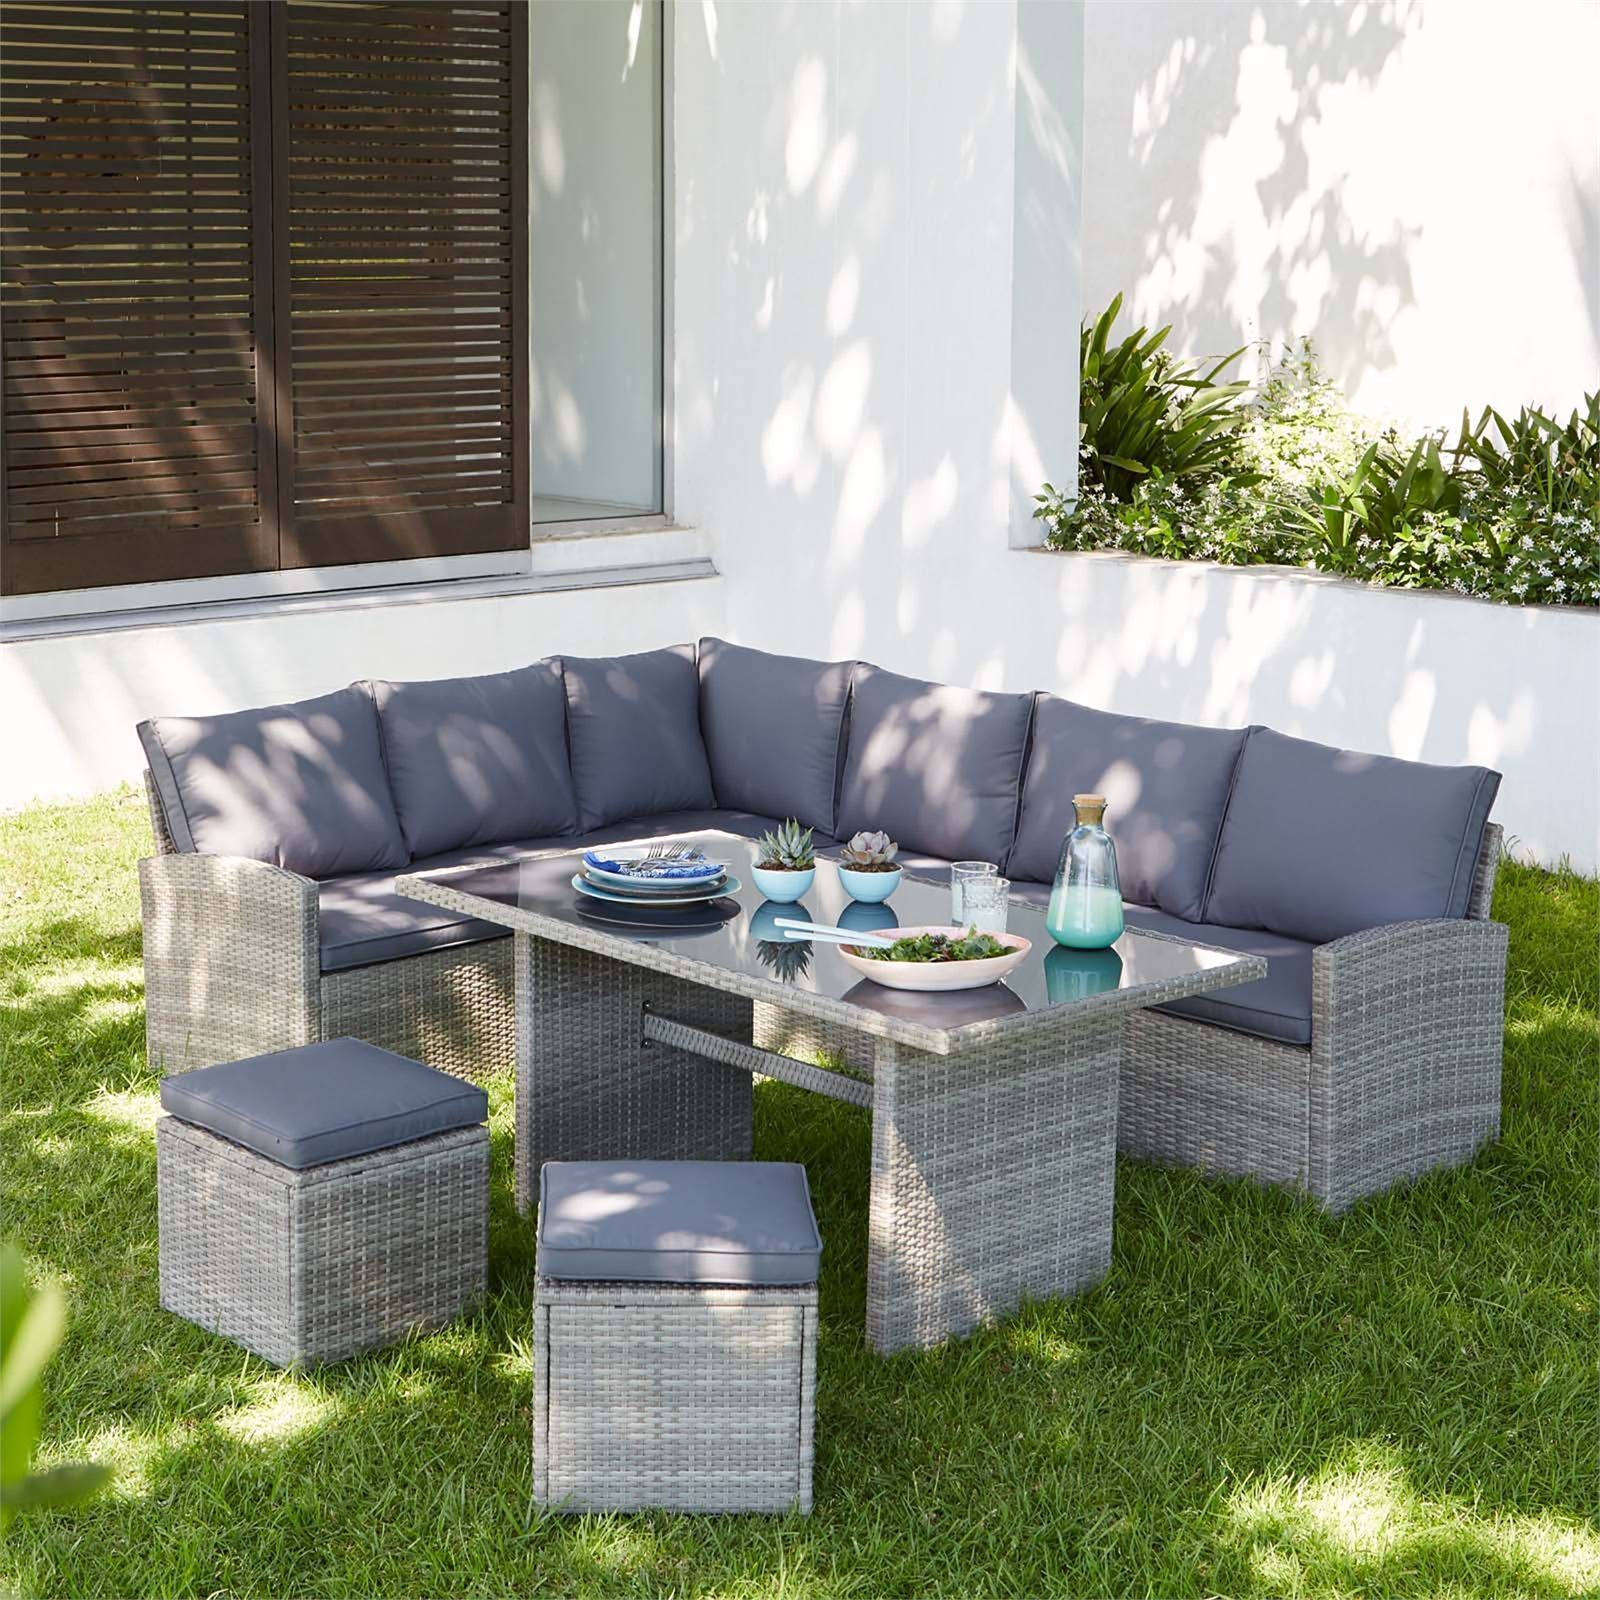 Matara Rattan Corner Sofa Dining Garden Furniture Set In 2020 With Images Garden Sofa Set Garden Furniture Rattan Corner Sofa